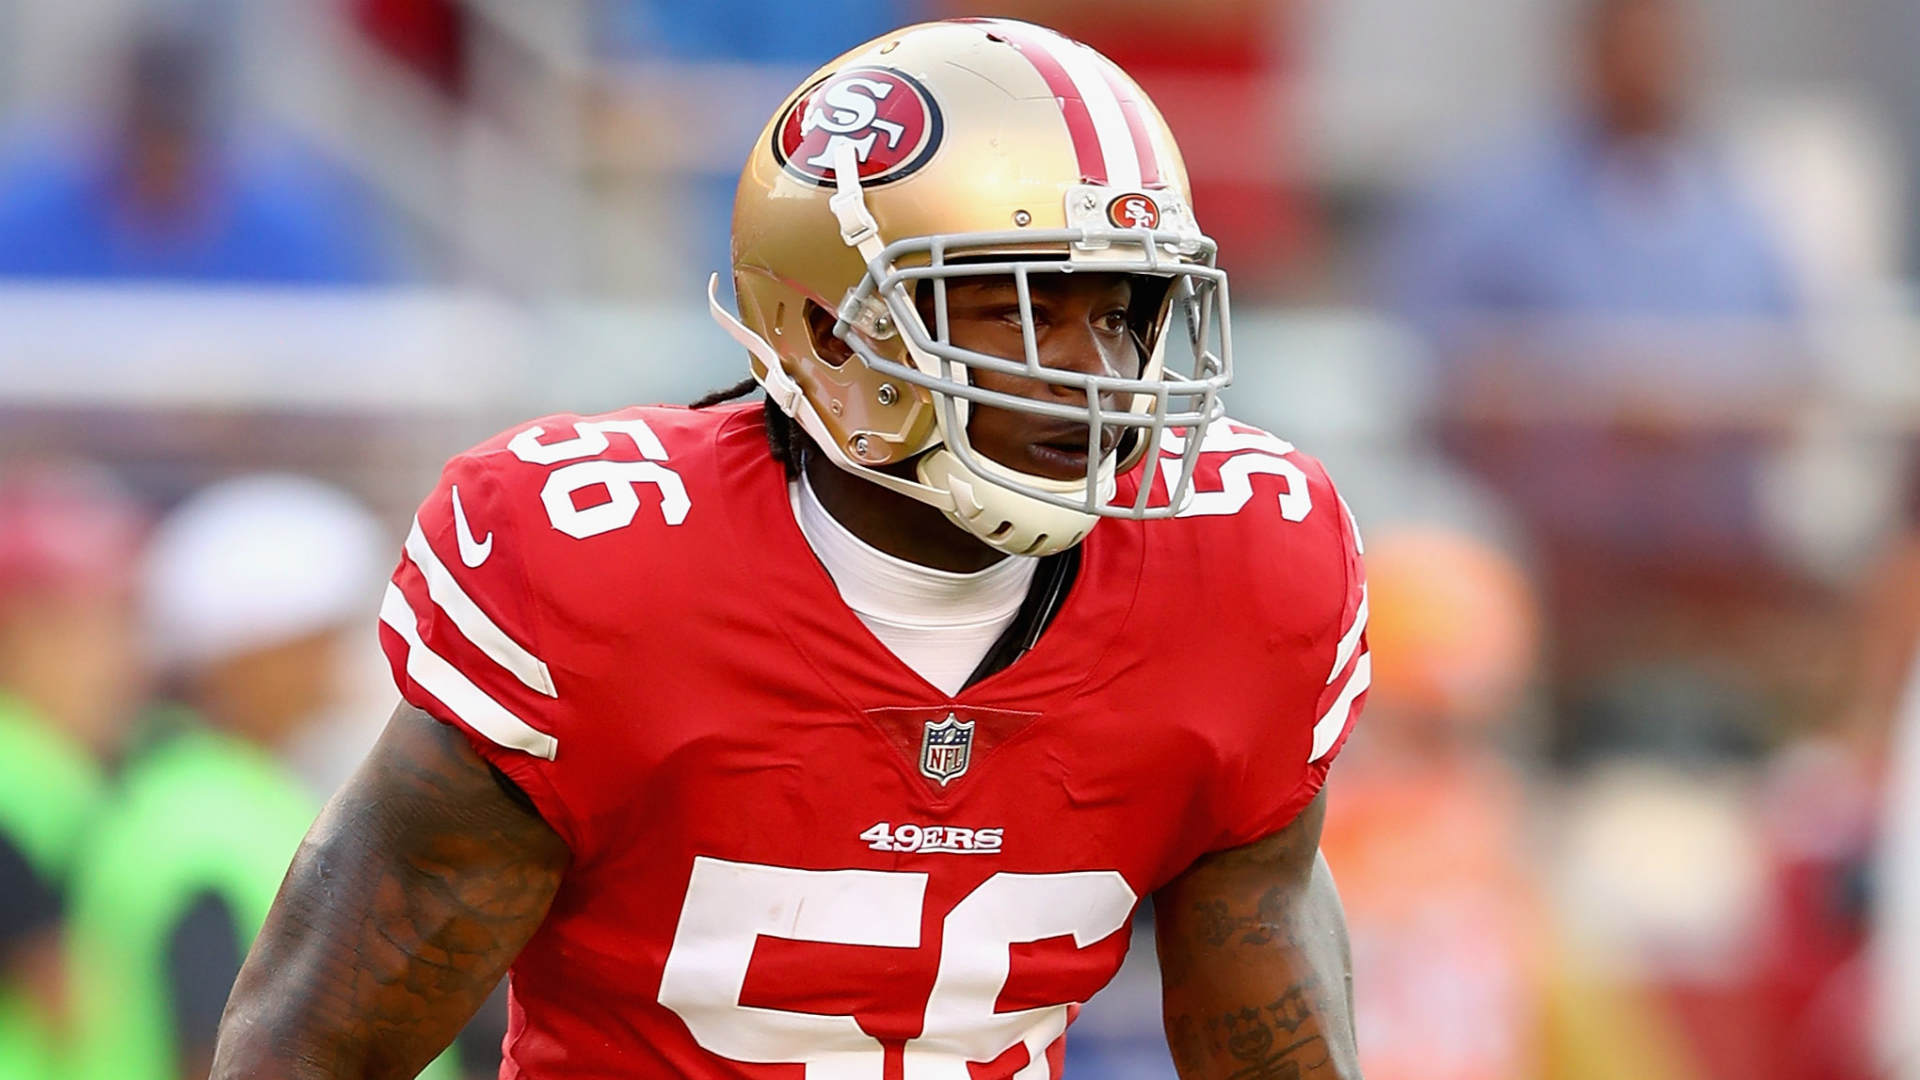 John Lynch remained guarded on the situation surrounding 49ers linebacker Reuben Foster following his two offseason arrests.